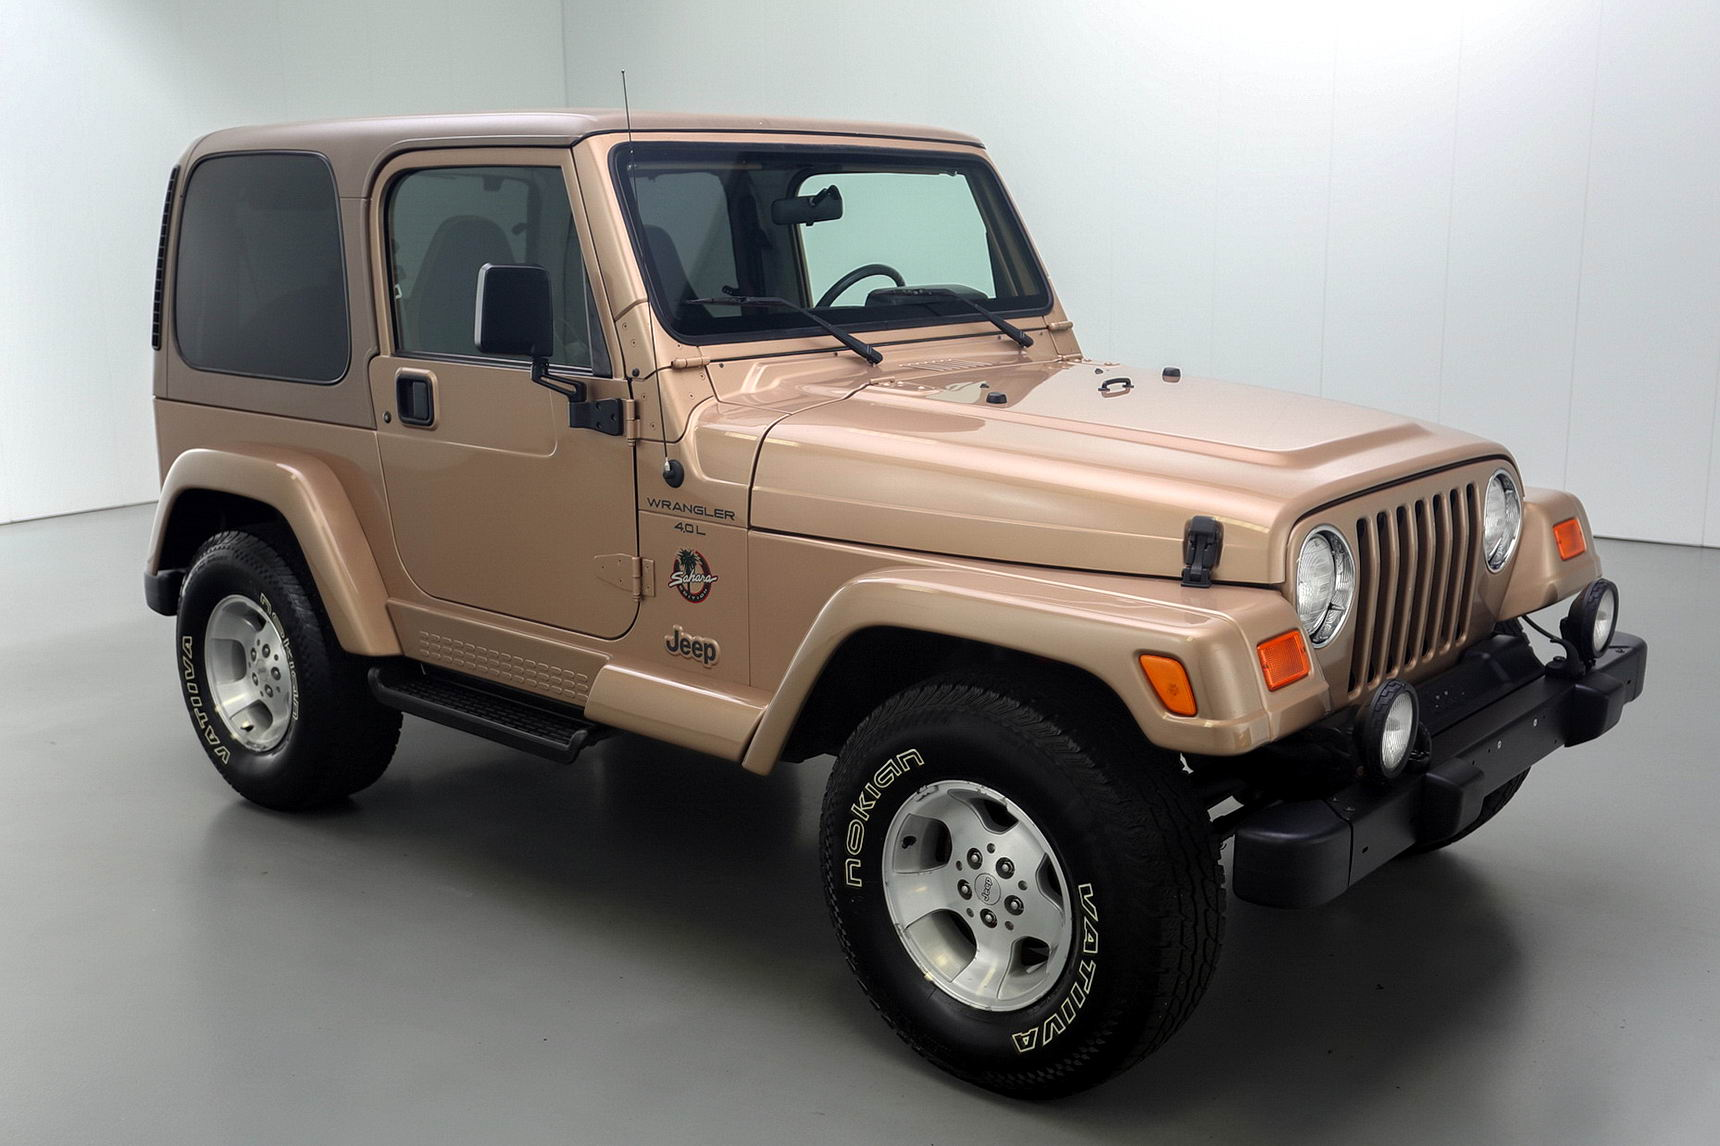 2000 jeep wrangler sahara 4 4 brutal motors. Black Bedroom Furniture Sets. Home Design Ideas